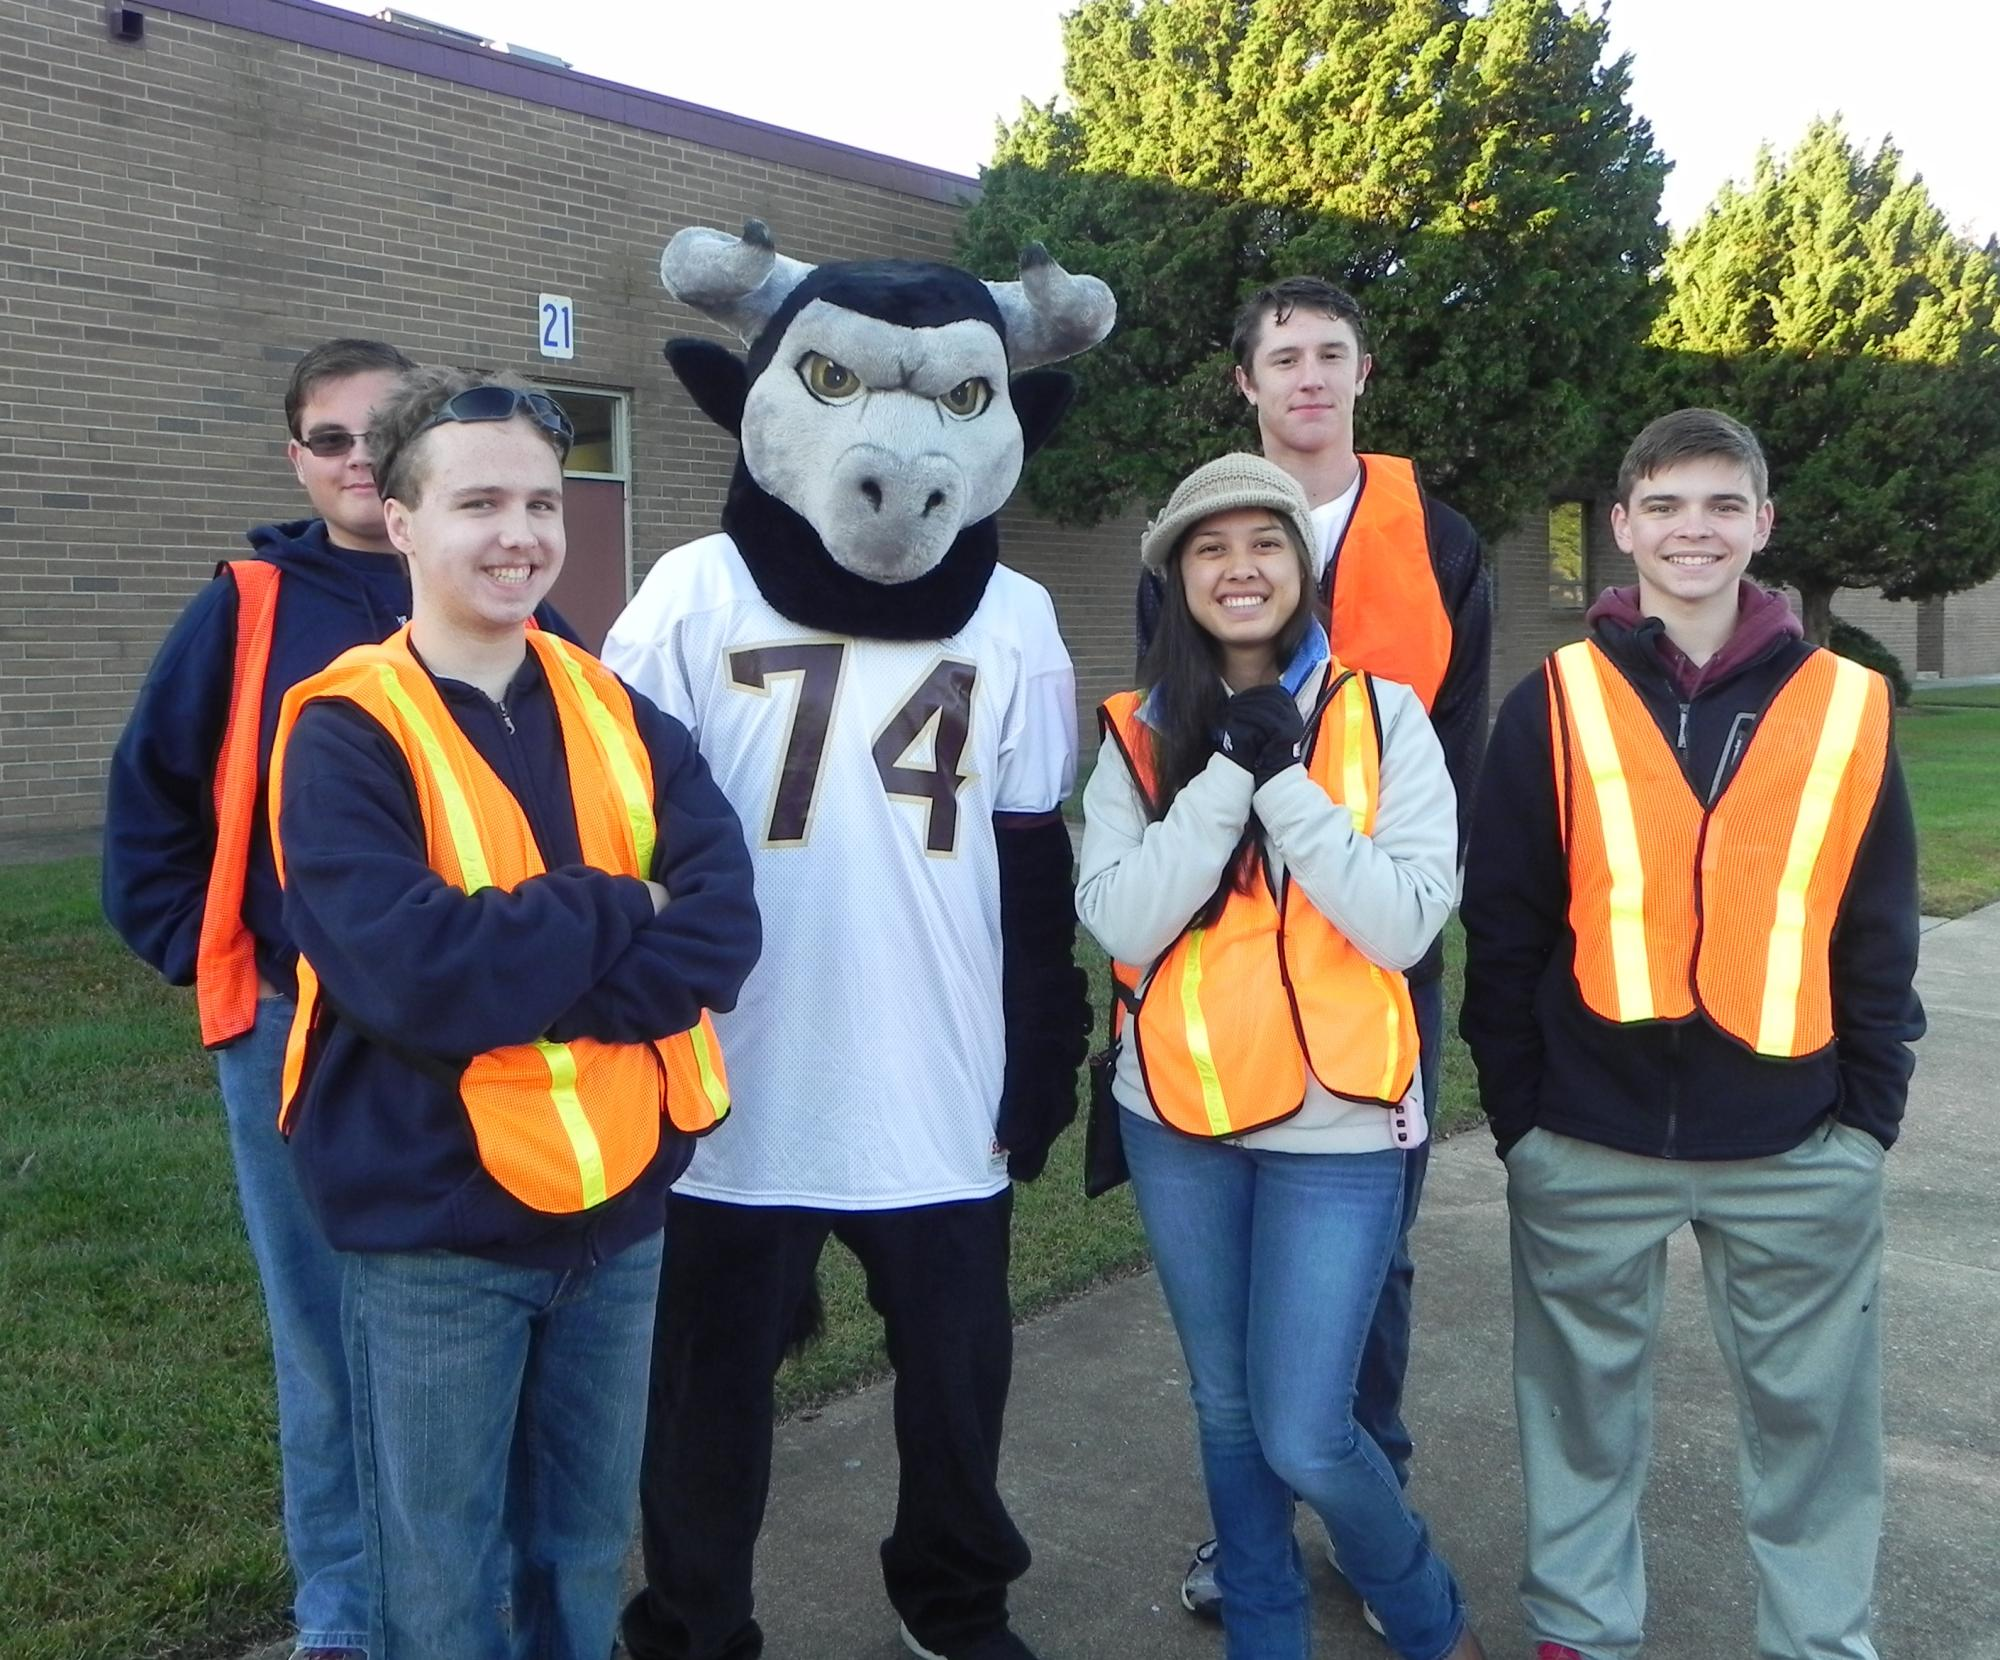 phs-mascot-with-key-club-members-oct-31-2015.jpg